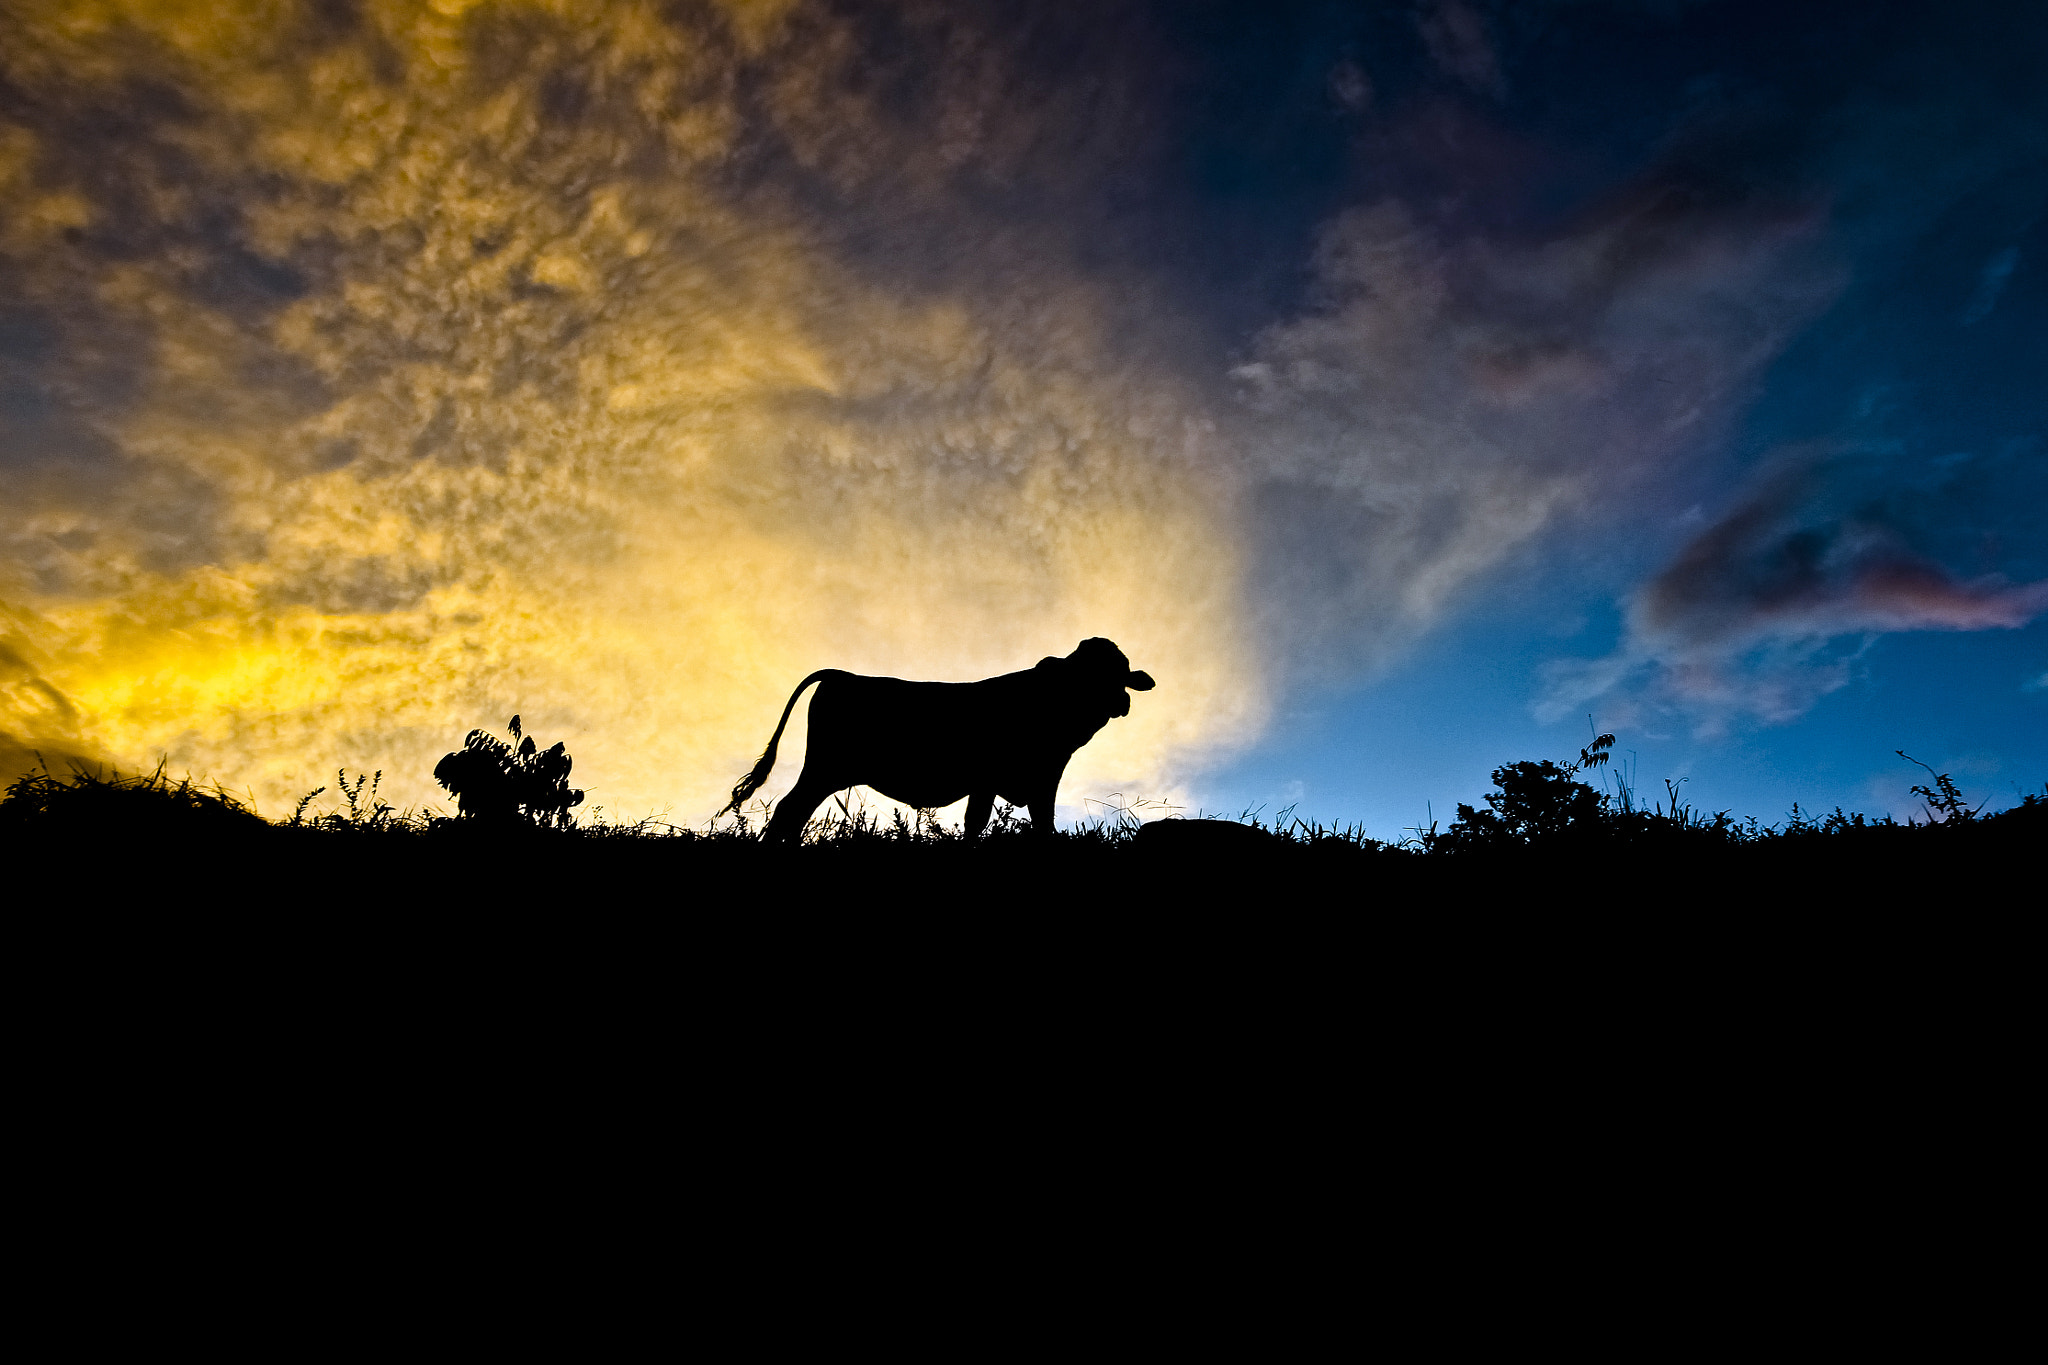 Photograph Cow and Clouds by Tiago Brandão on 500px